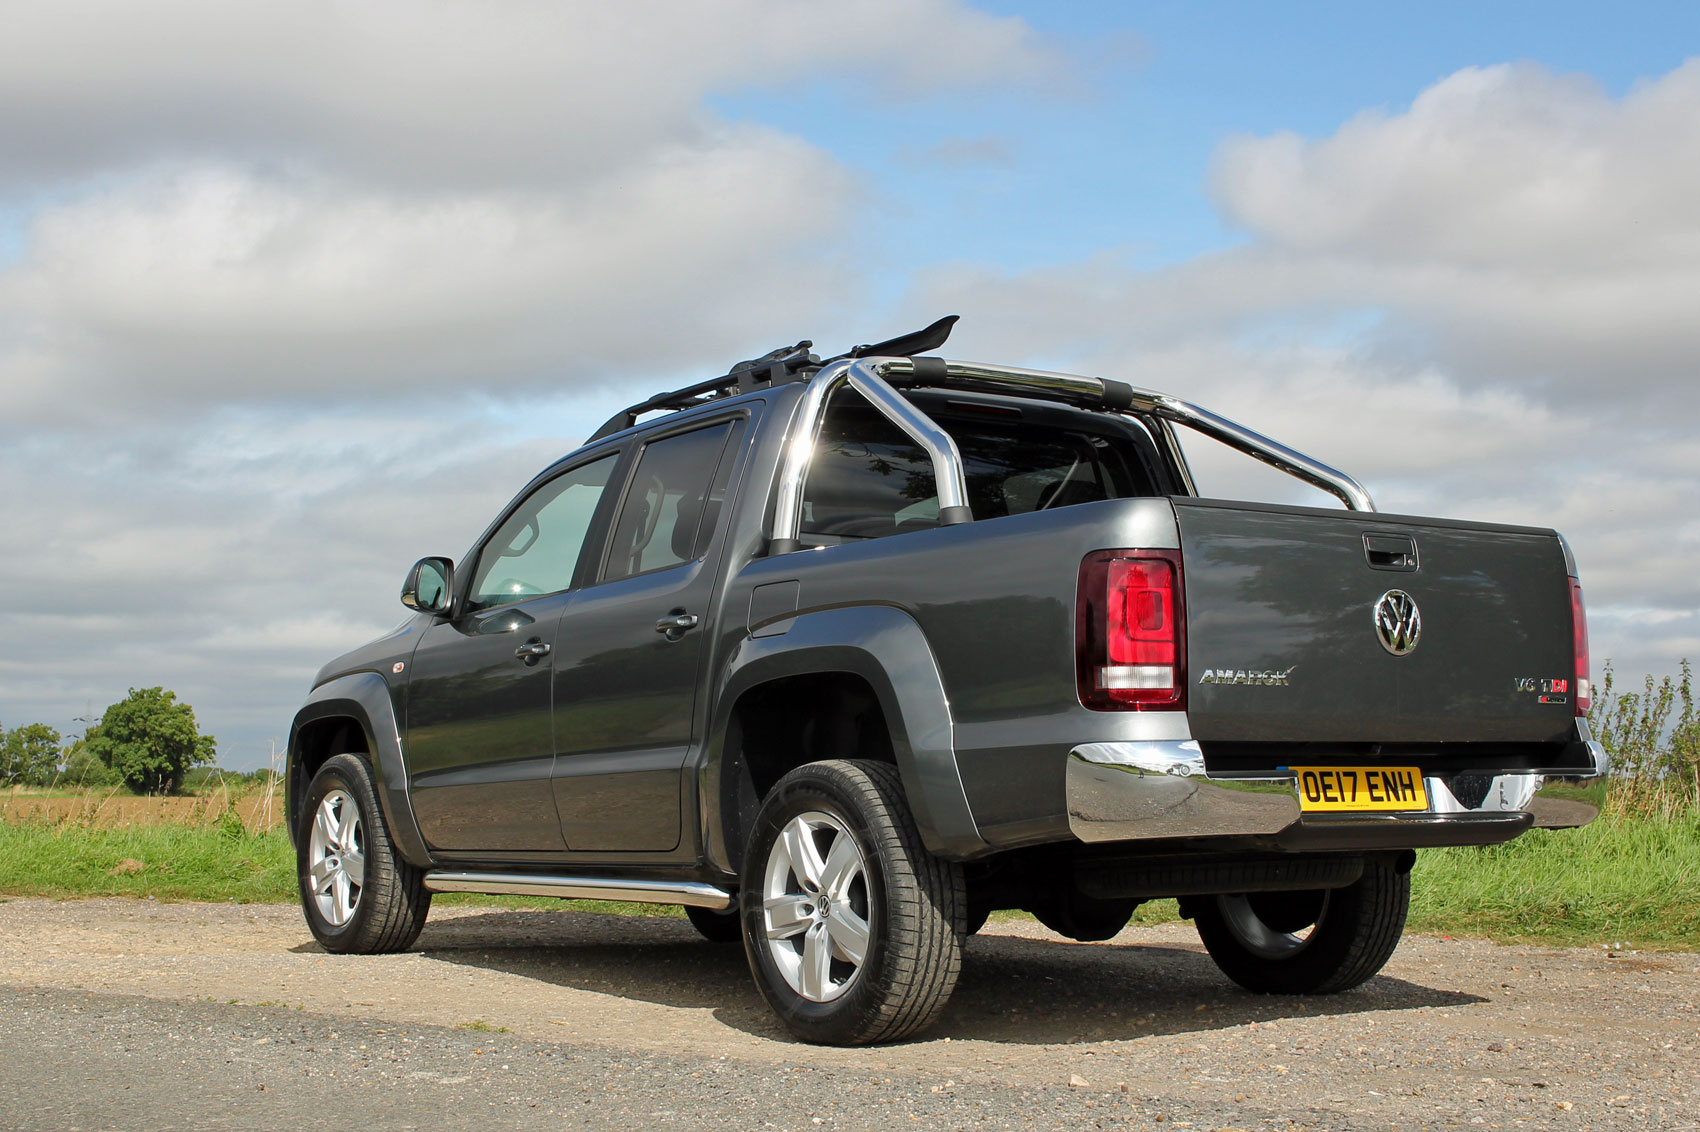 volkswagen amarok 3 0 v6 tdi 220ps a33 d cab pick up. Black Bedroom Furniture Sets. Home Design Ideas